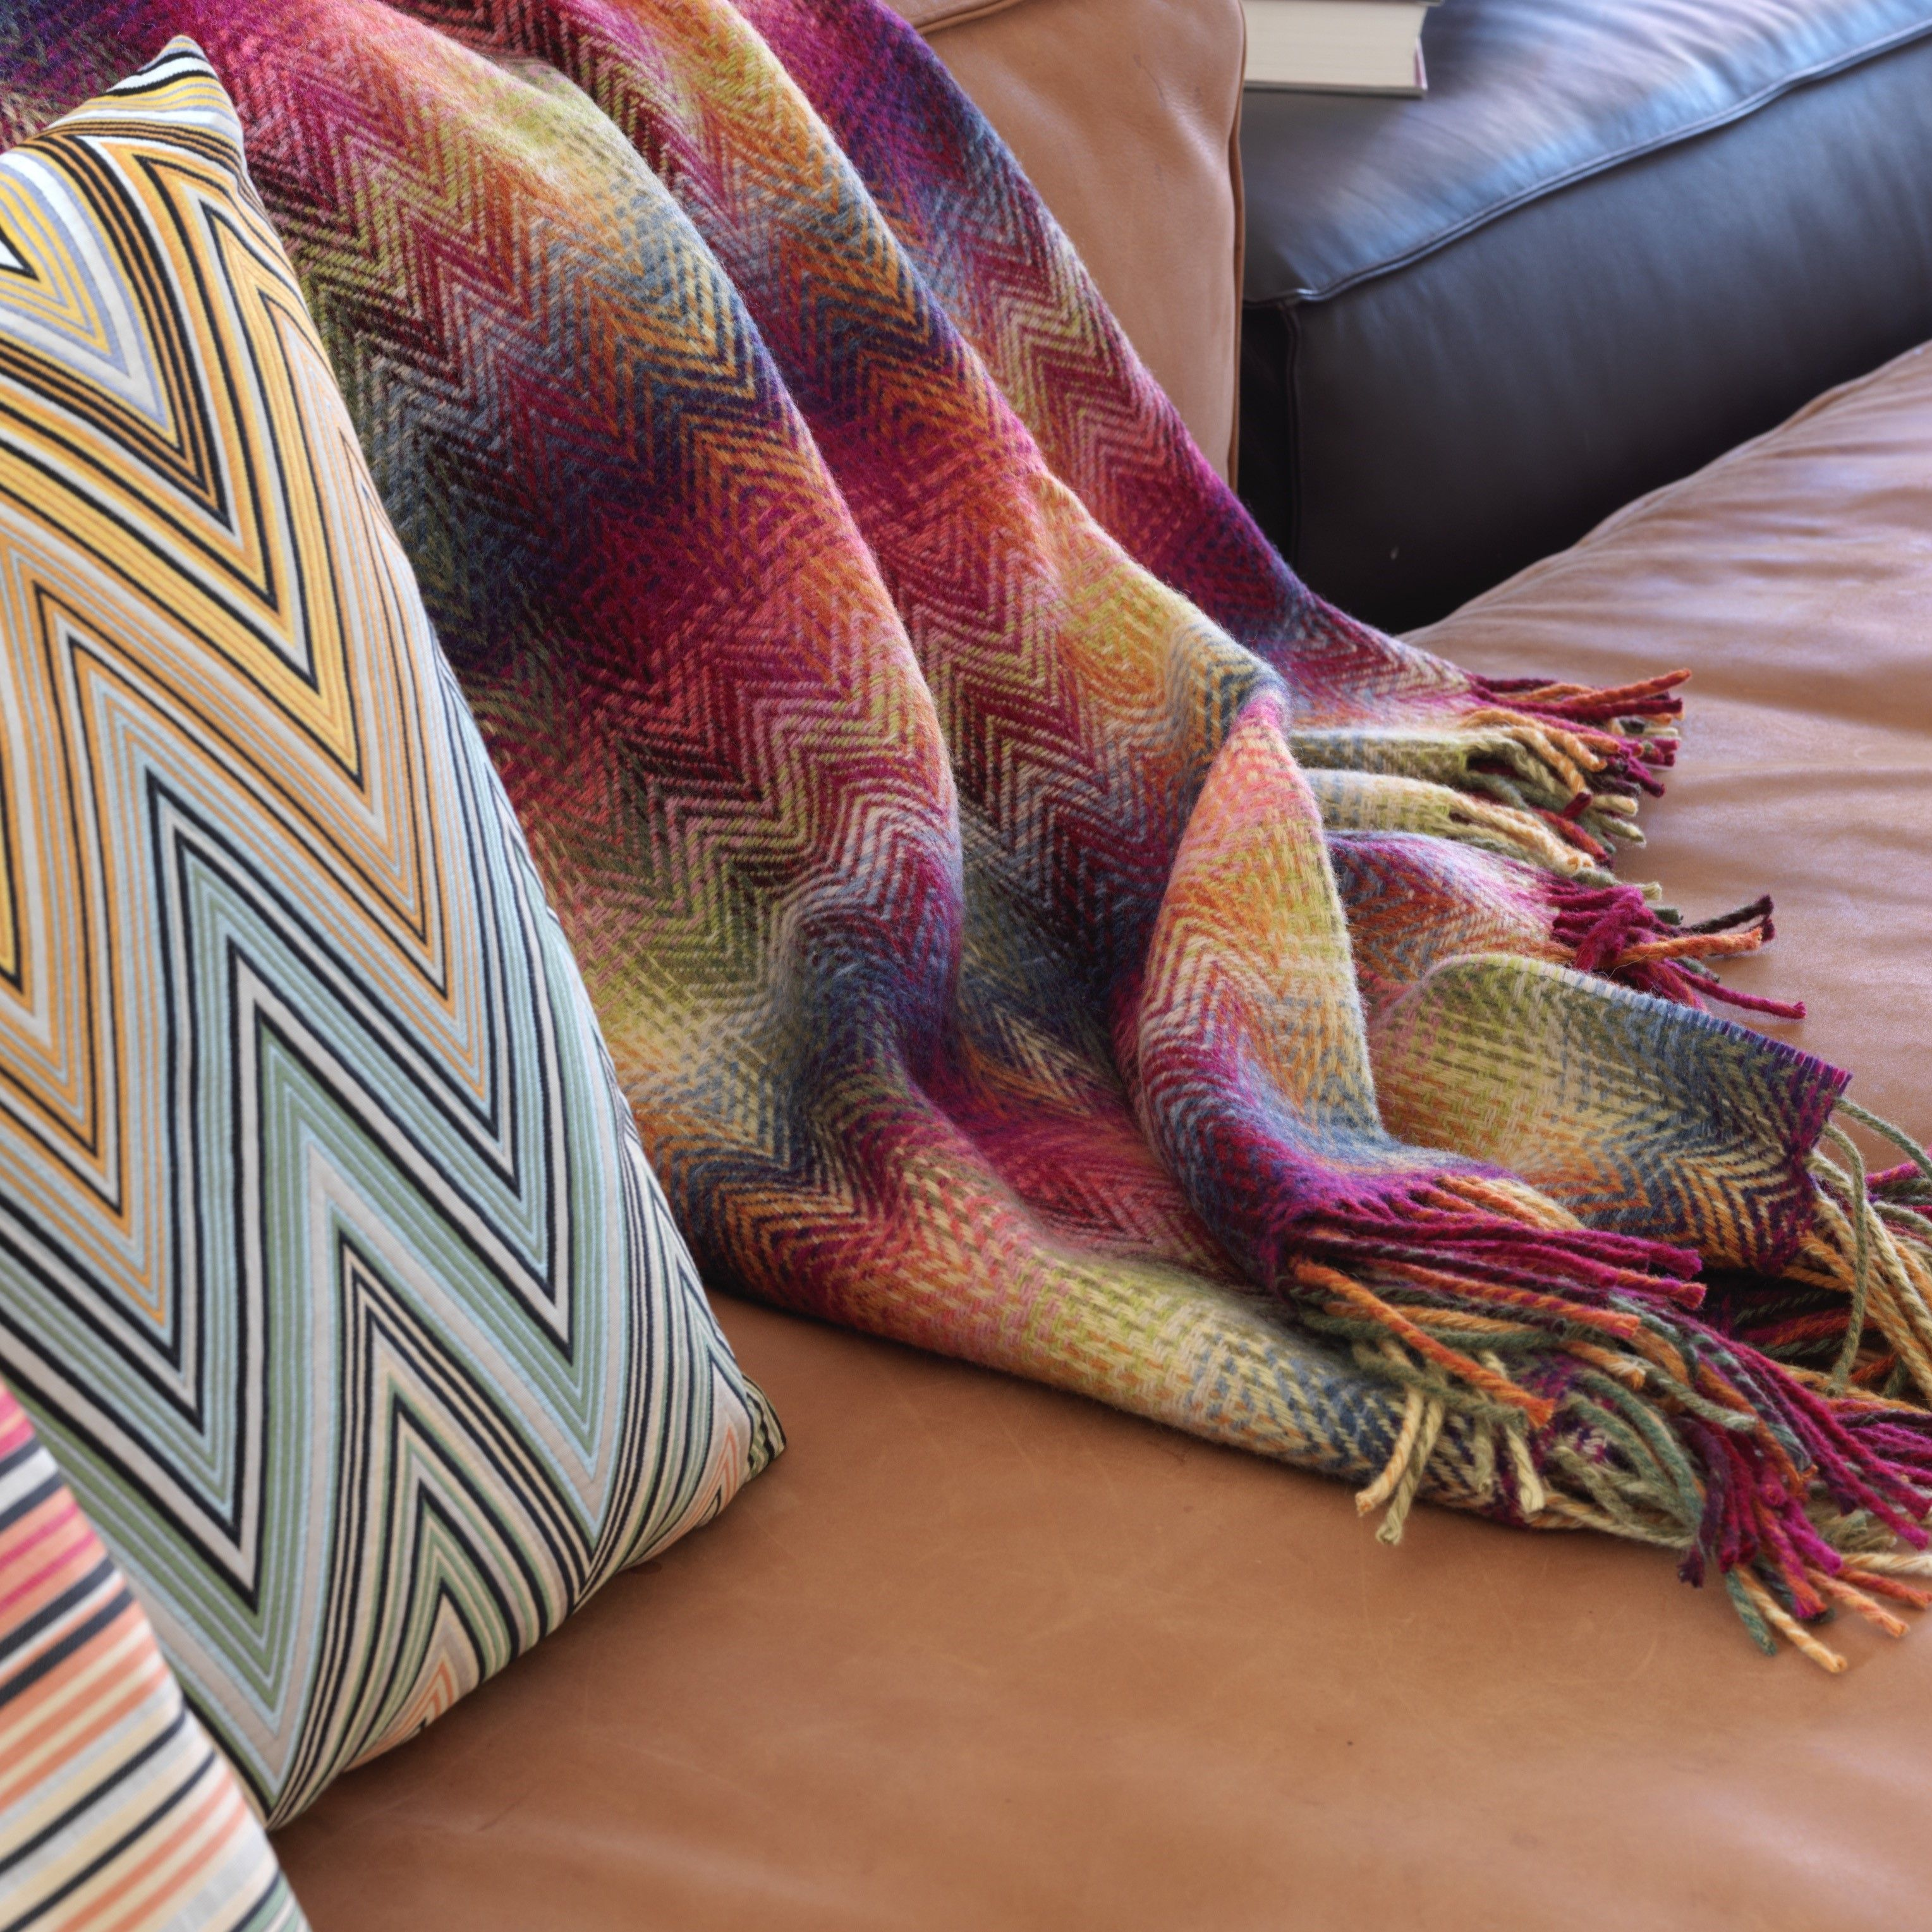 for throw with pillow offerings pillows avenue carpet saks wool plaid arrival rugs missoni area masters amazing file new fifth interesting